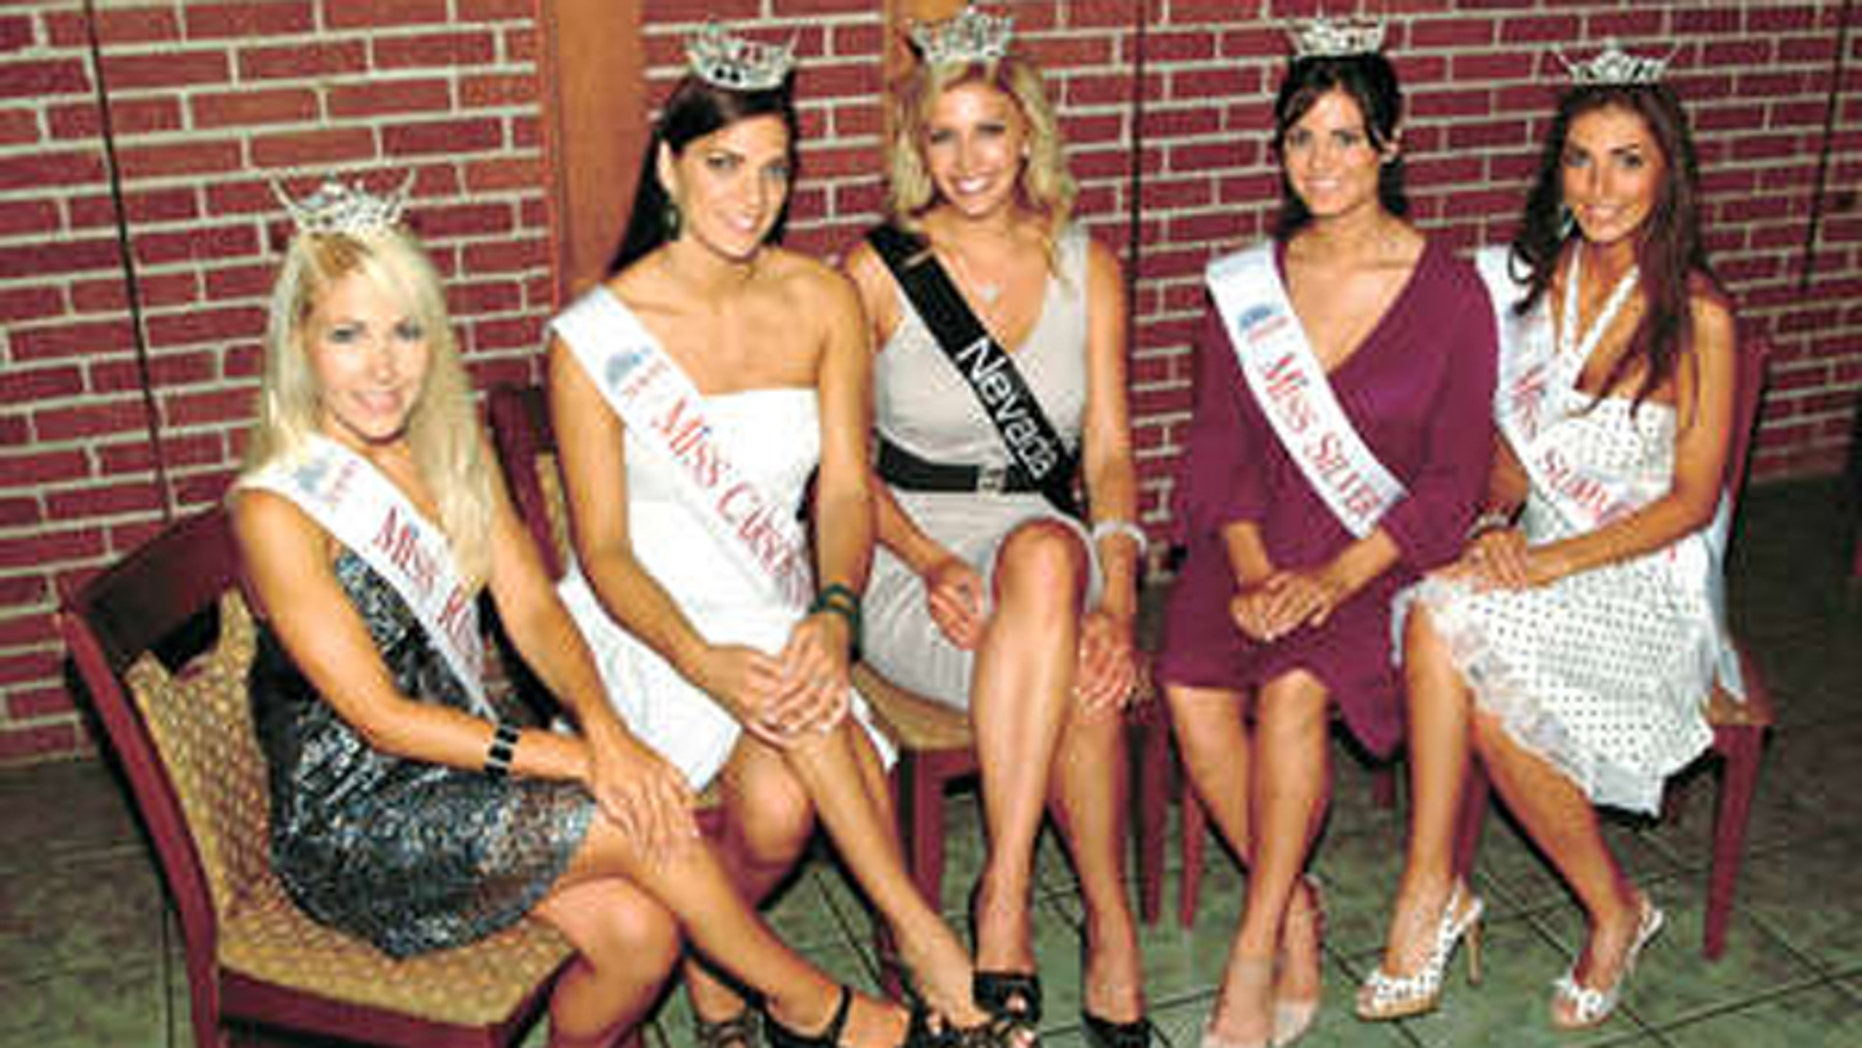 Miss Nevada 2007 Caleche Manos, center, is flanked by beauties aspiring to succeed her. (Nathan Orme, Daily Sparks Tribune).